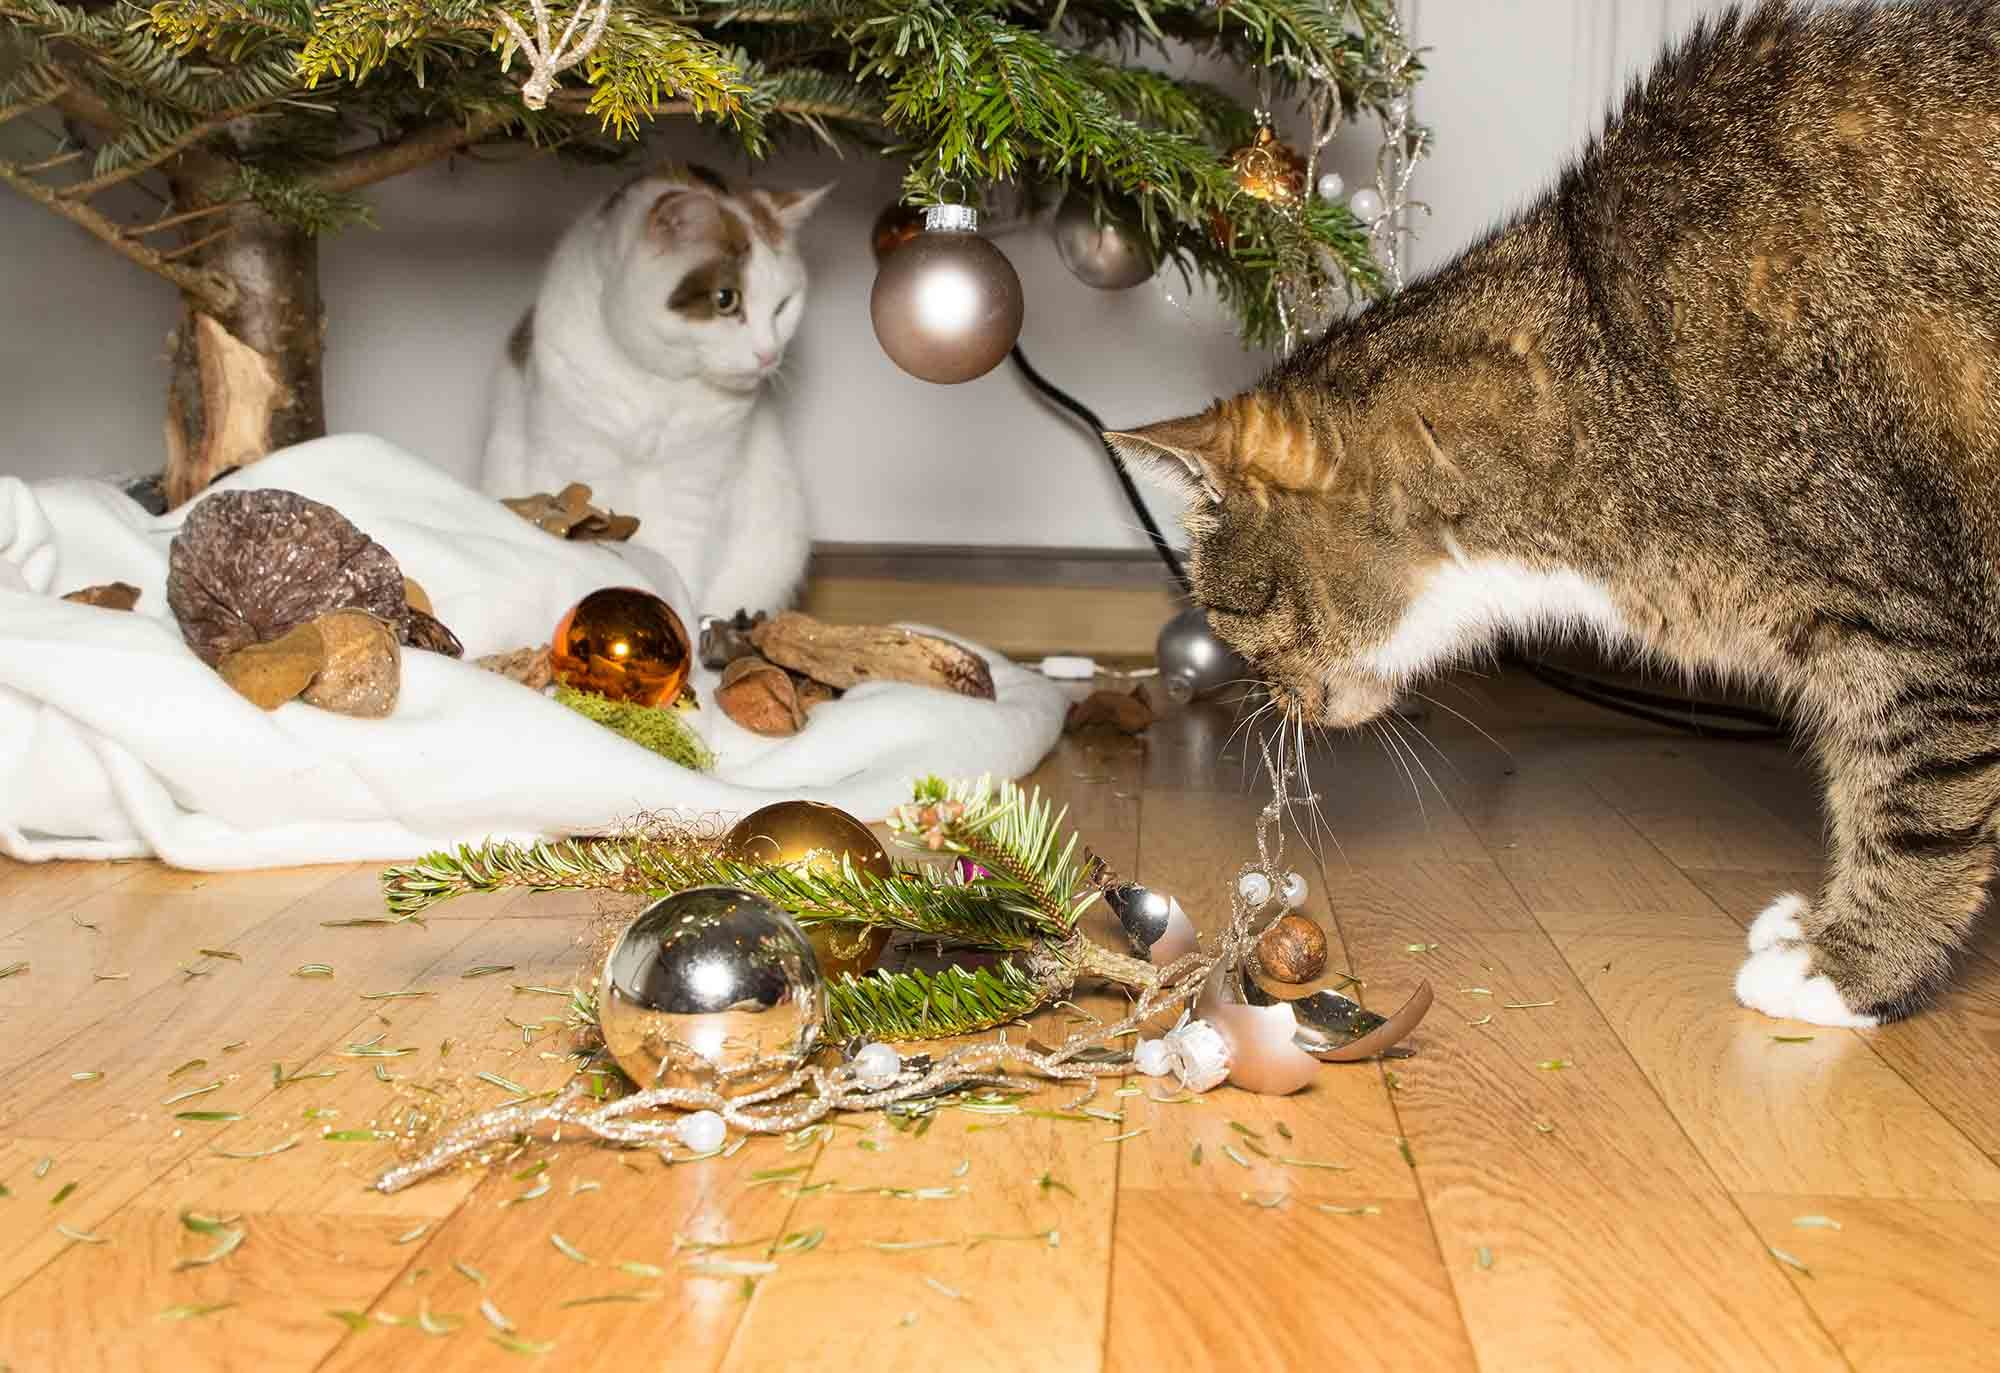 Holiday Decorations Pose Serious Safety Hazards For Pets